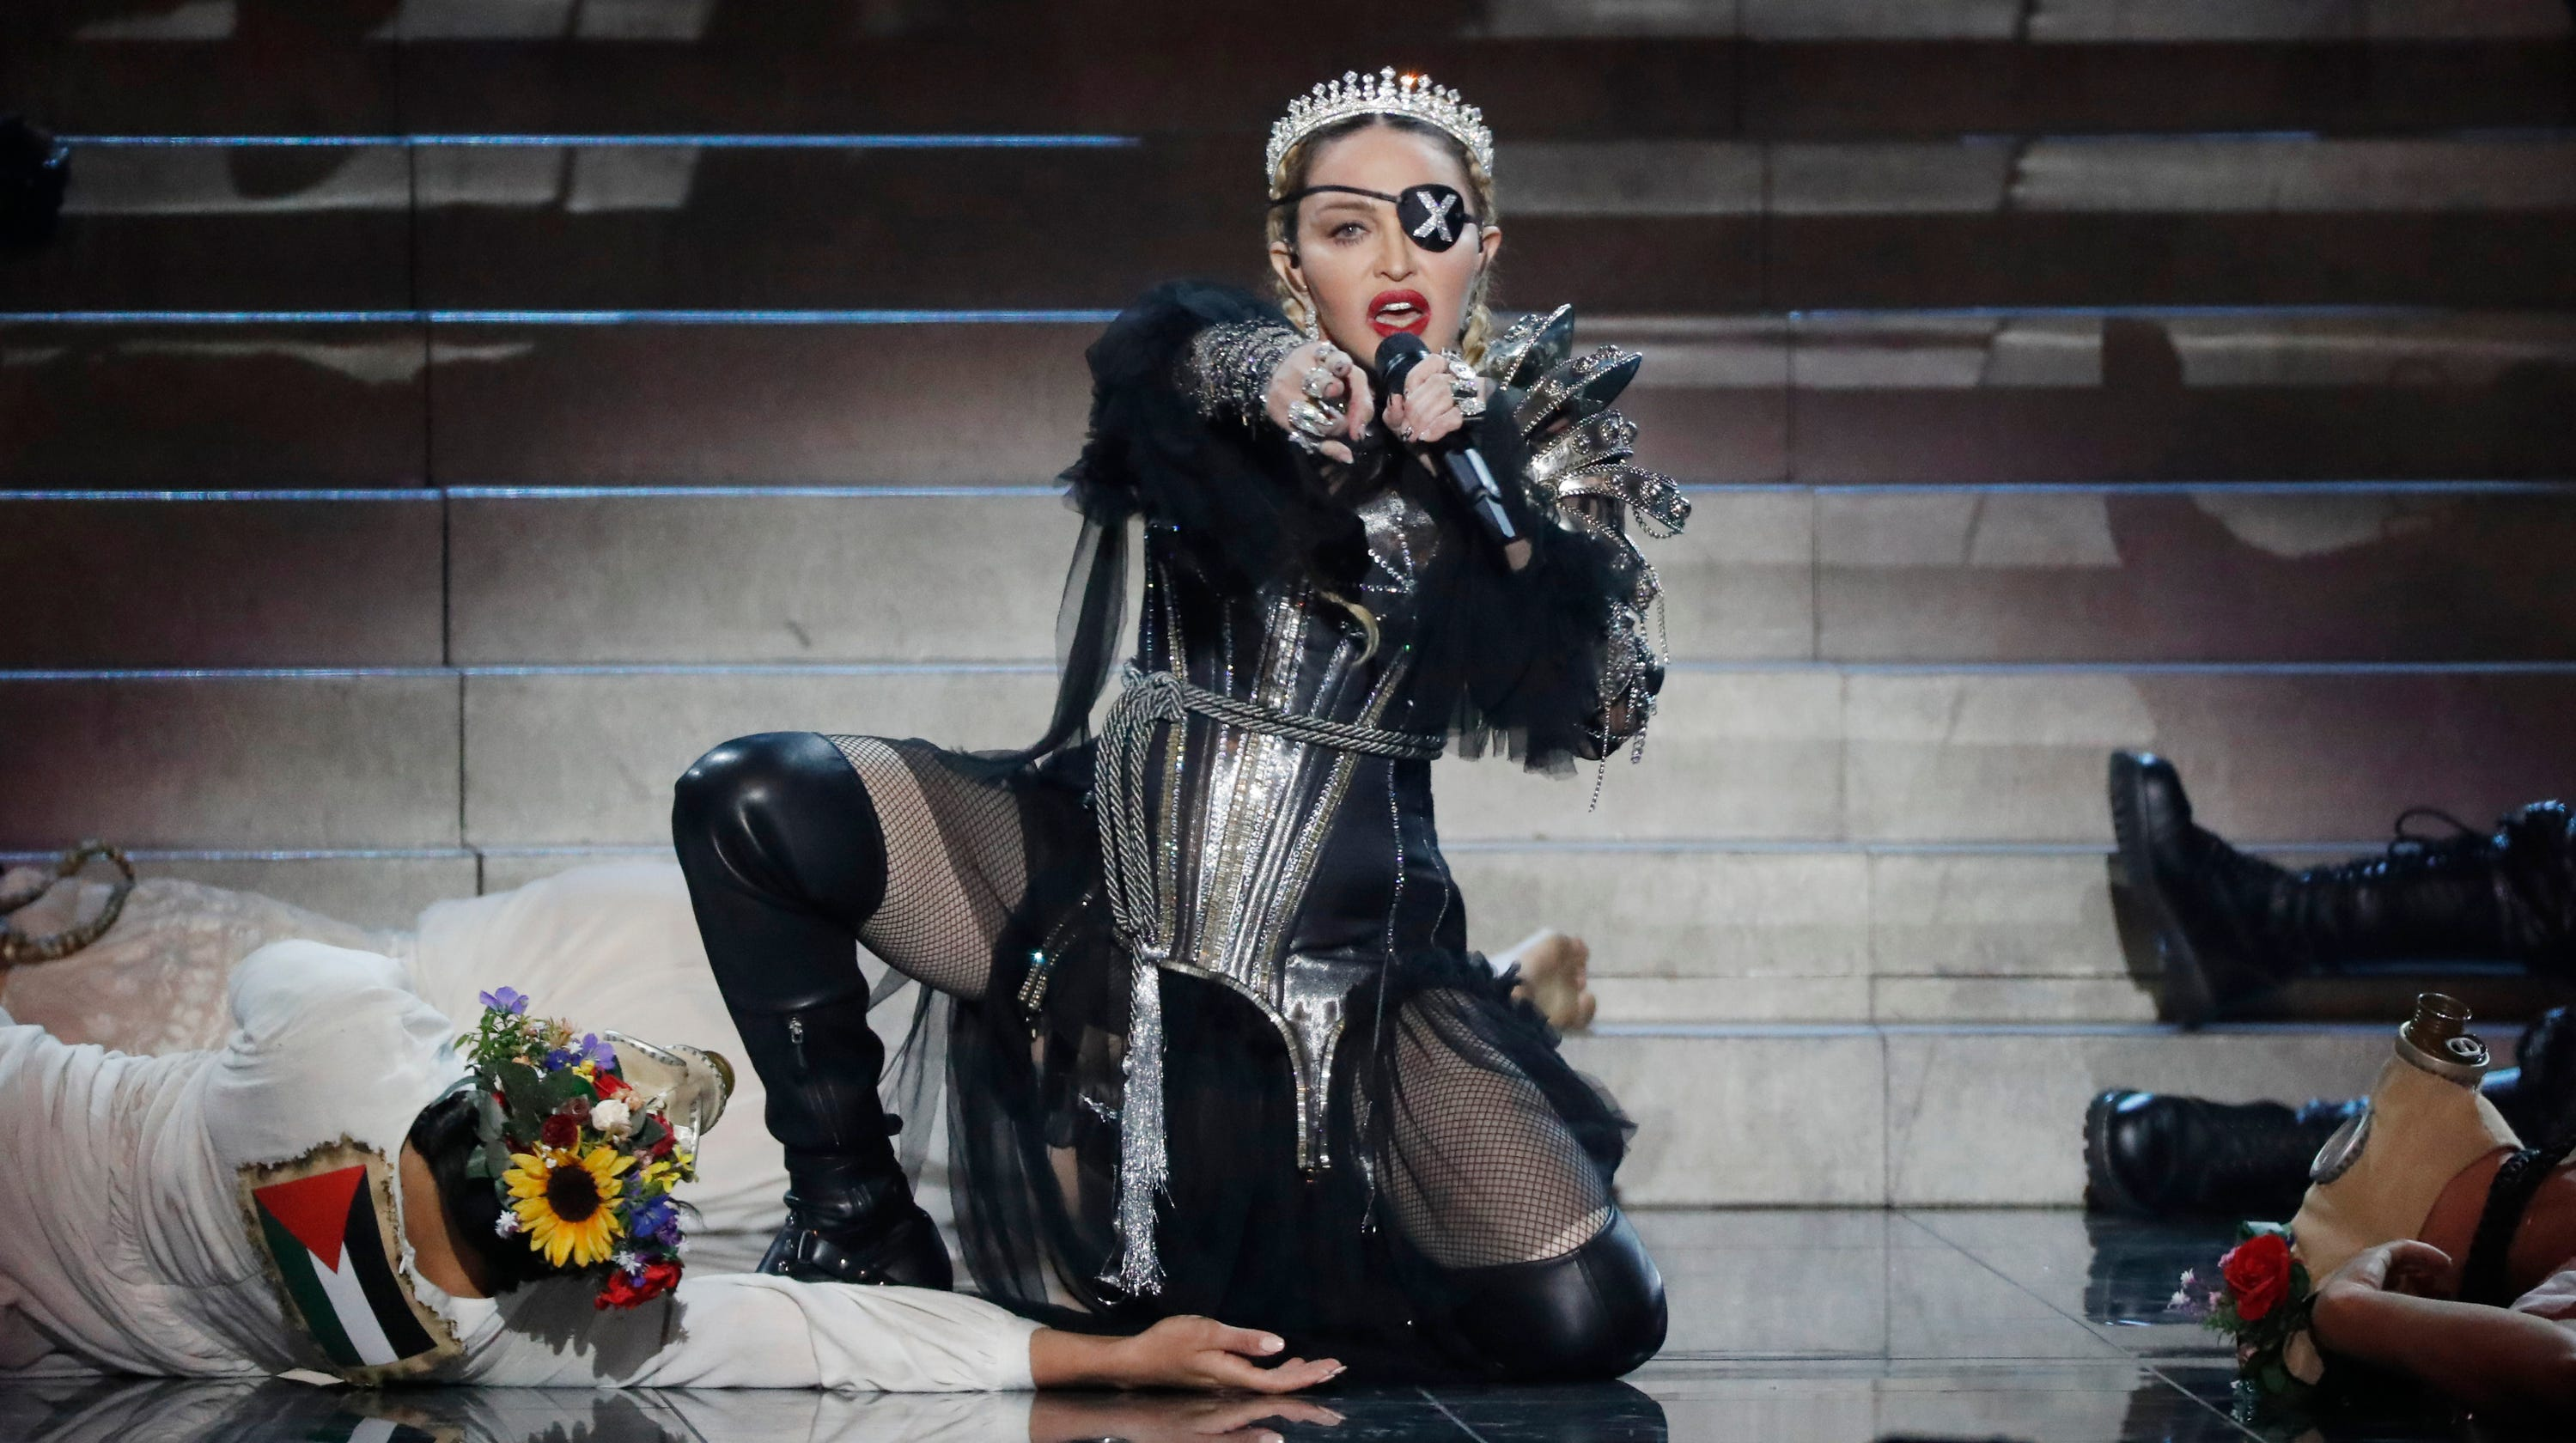 Madonna sparks controversy at 'non-political' Eurovision with her flag display